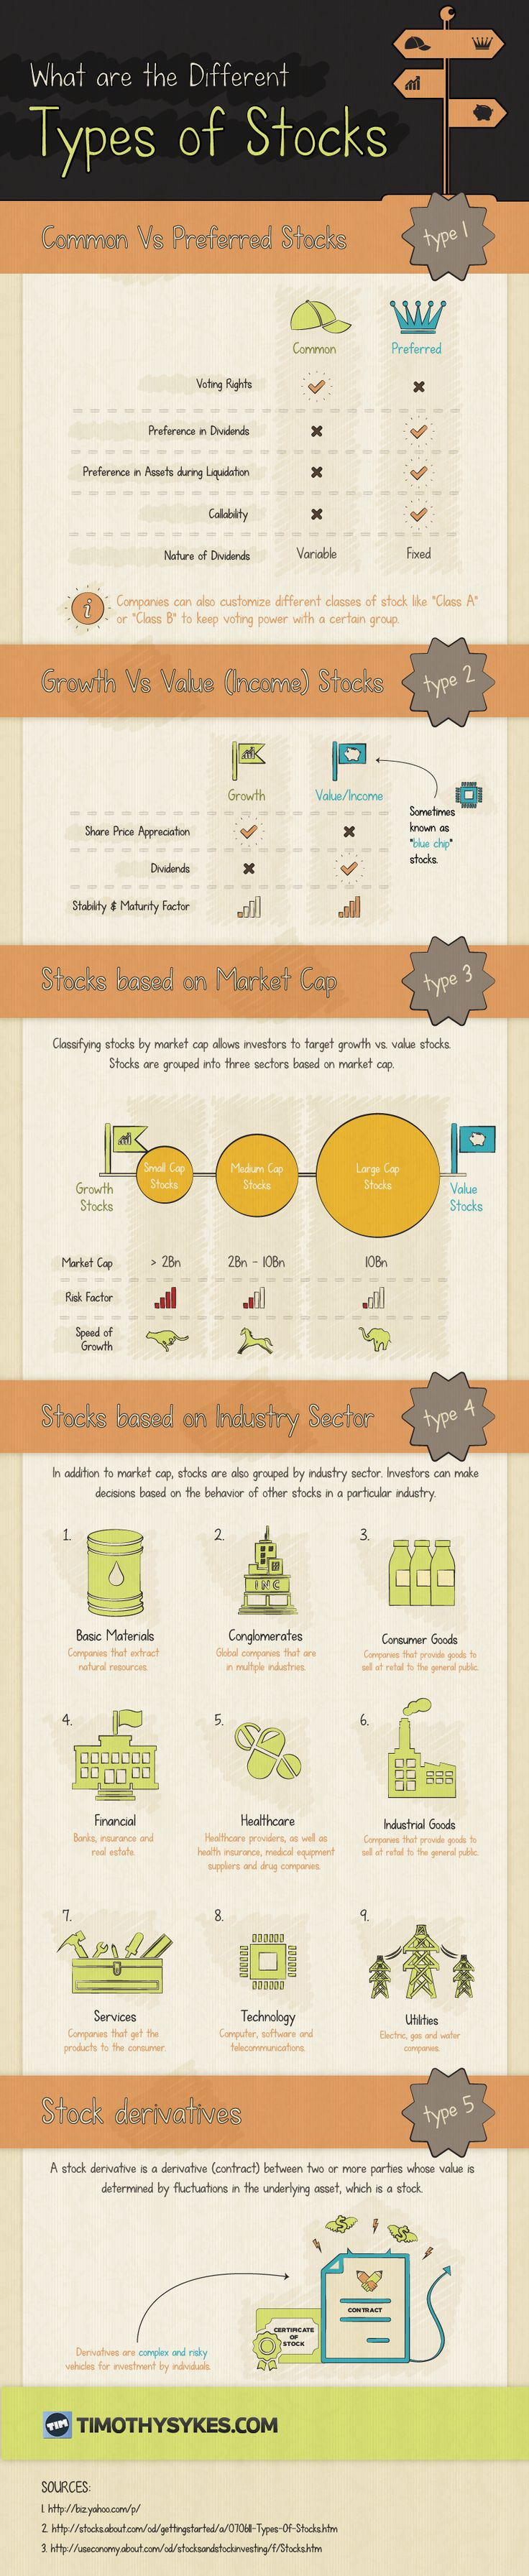 What Are The Different Types of Stocks? #infographic #Stock #StockBroker Found @ronbeaubien  http://www.tradingprofits4u.com/